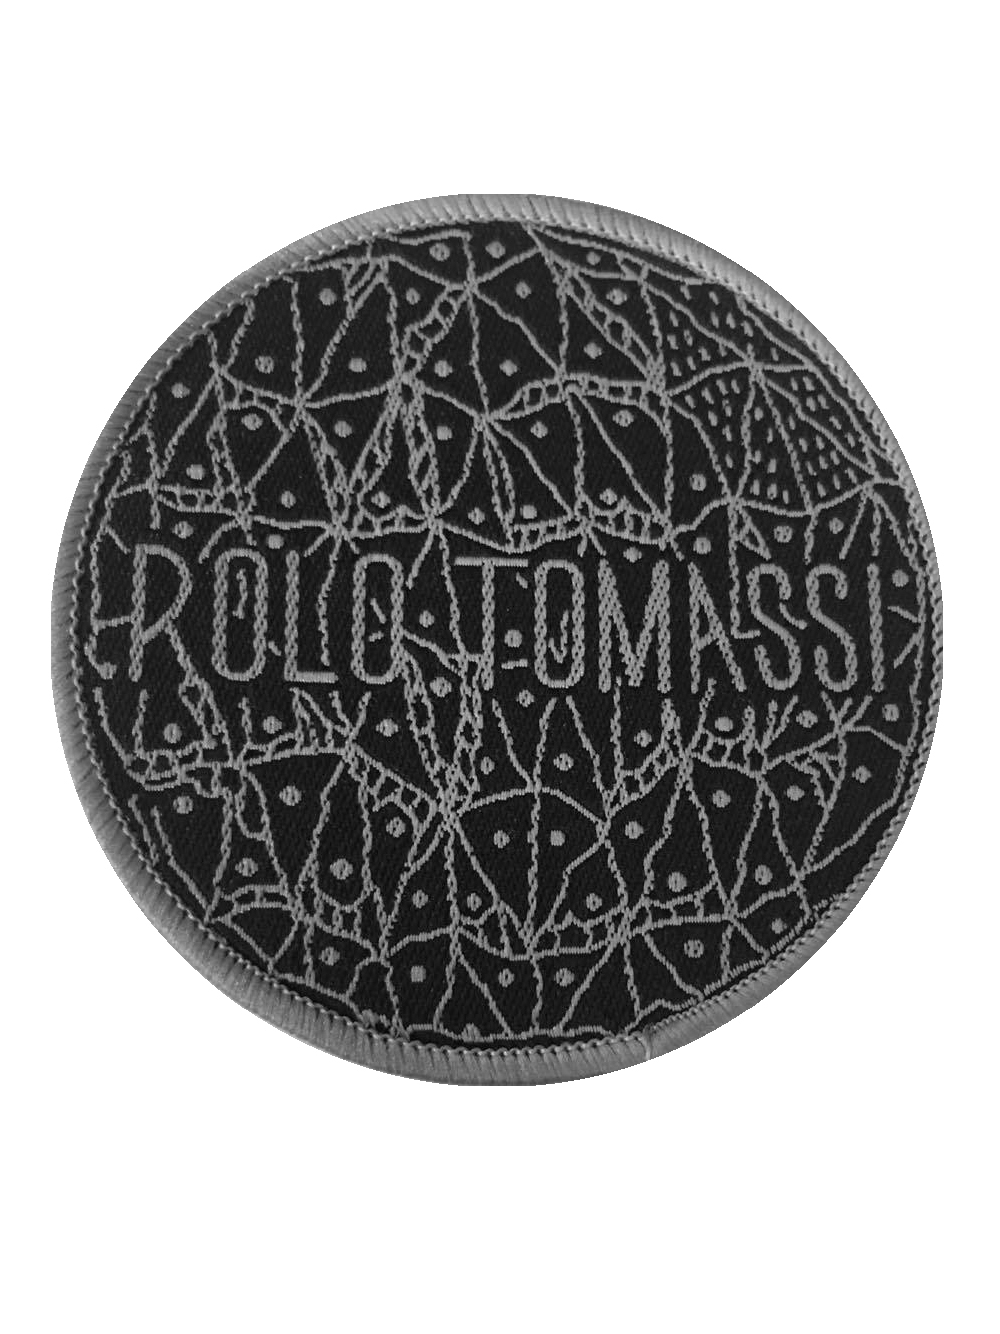 Rolo Tomassi - Astraea patch